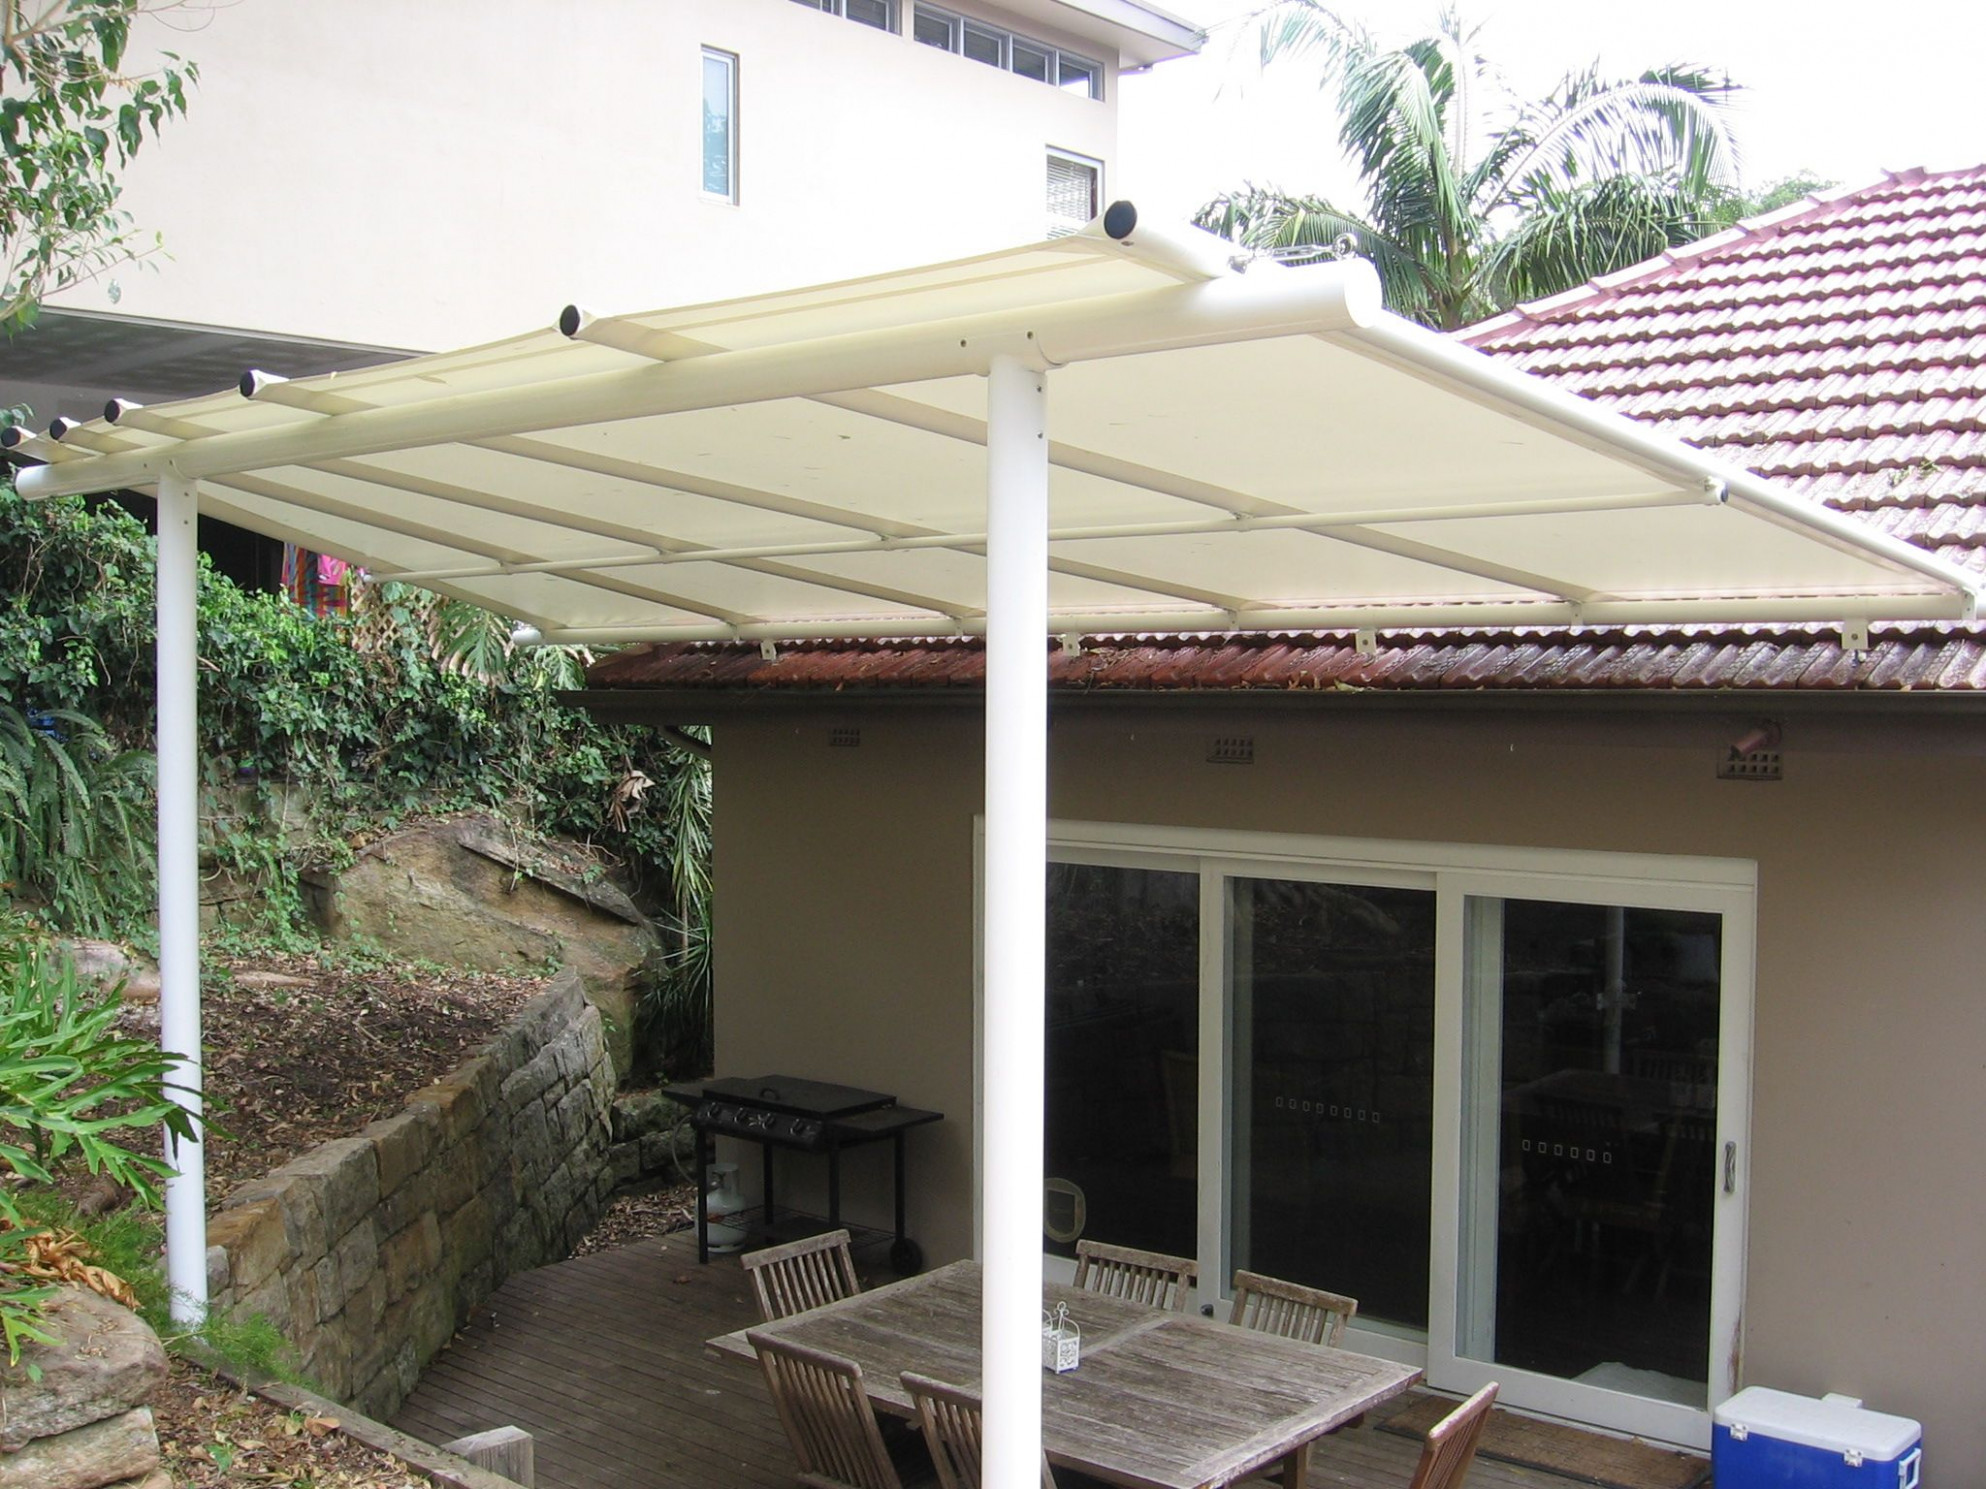 A Reverse Pitch Batten Awning Allows More Light And A View ..